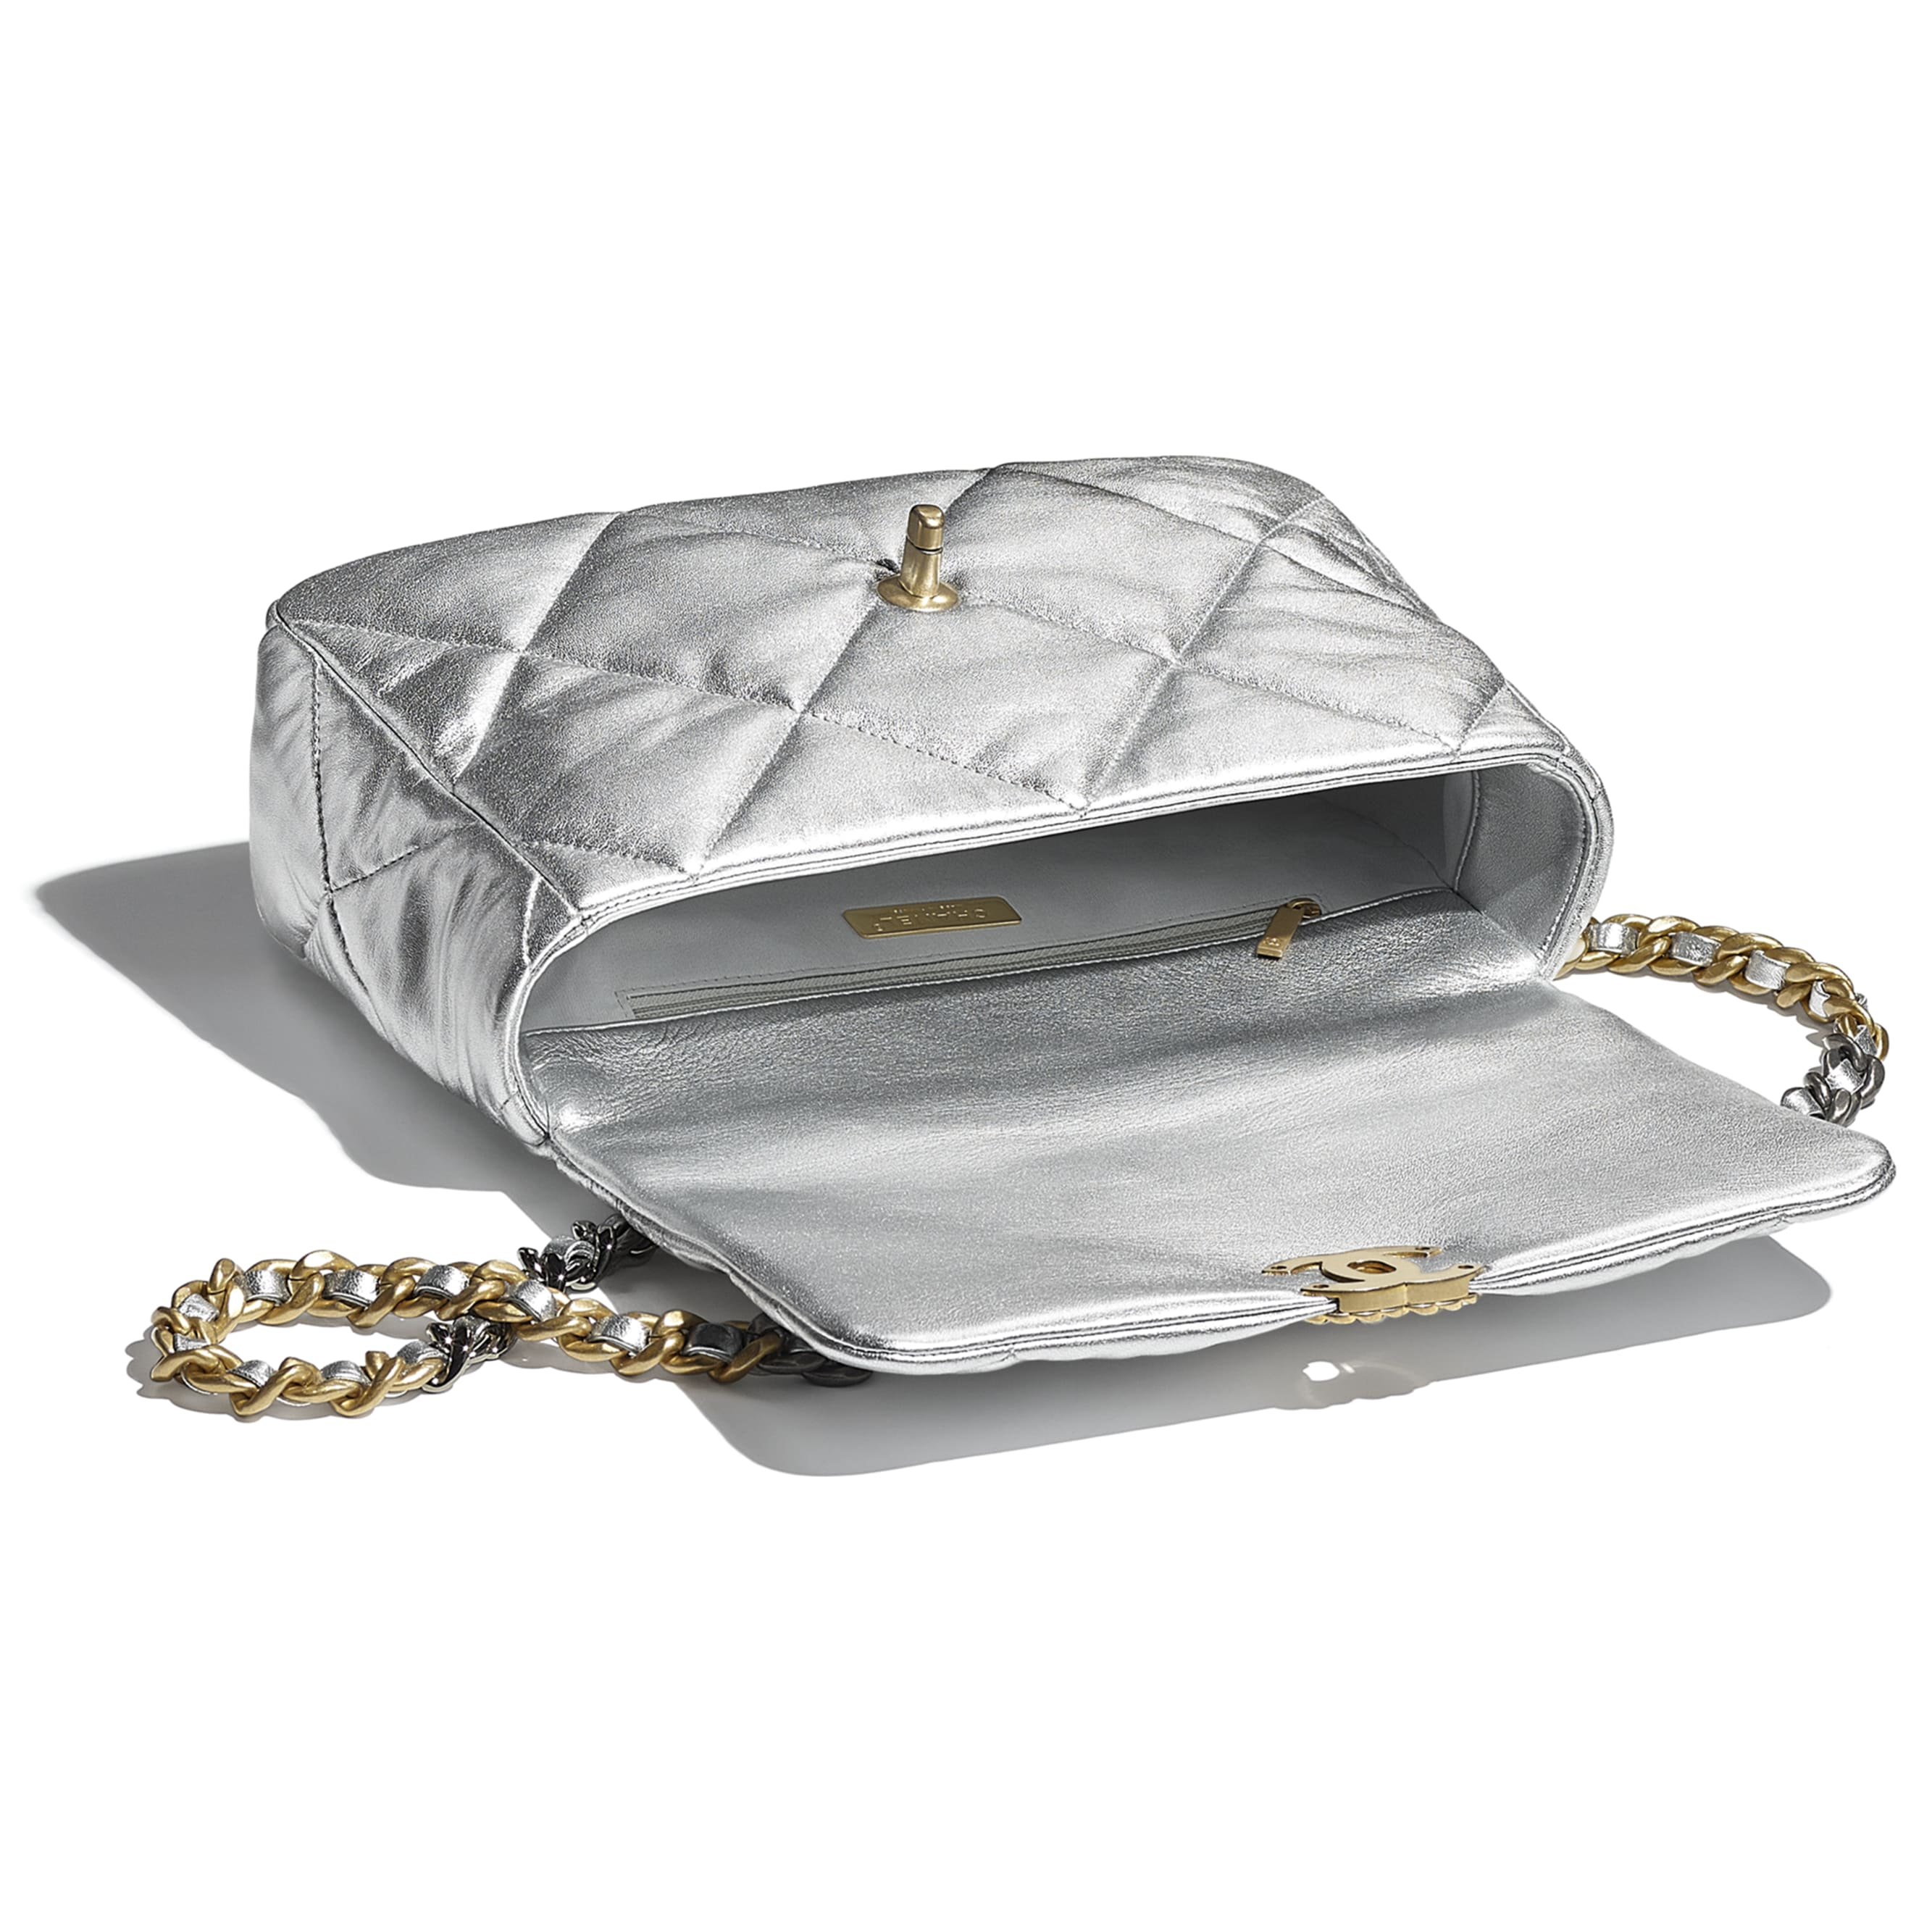 CHANEL 19 Large Handbag - Silver - Metallic Lambskin, Gold-Tone, Silver-Tone & Ruthenium-Finish Metal - CHANEL - Other view - see standard sized version